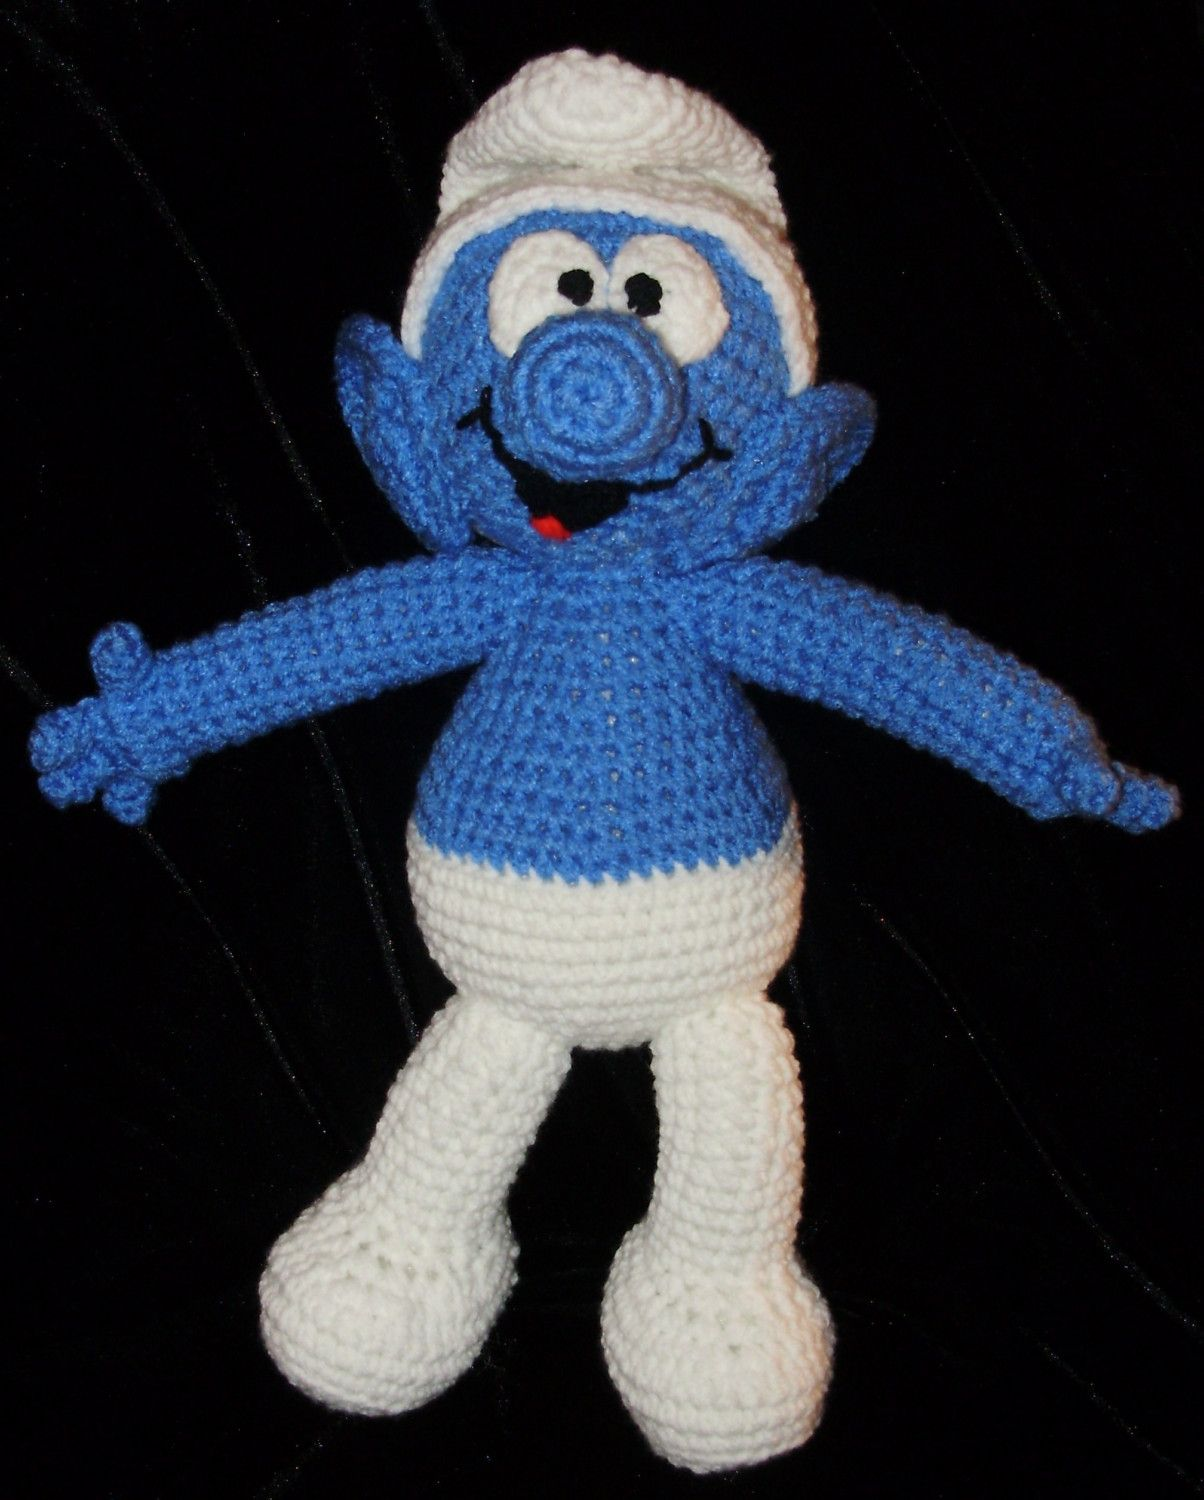 A smurf a crochet pattern by erin scull crochet etsy and a smurf a crochet pattern by erin scull bankloansurffo Image collections